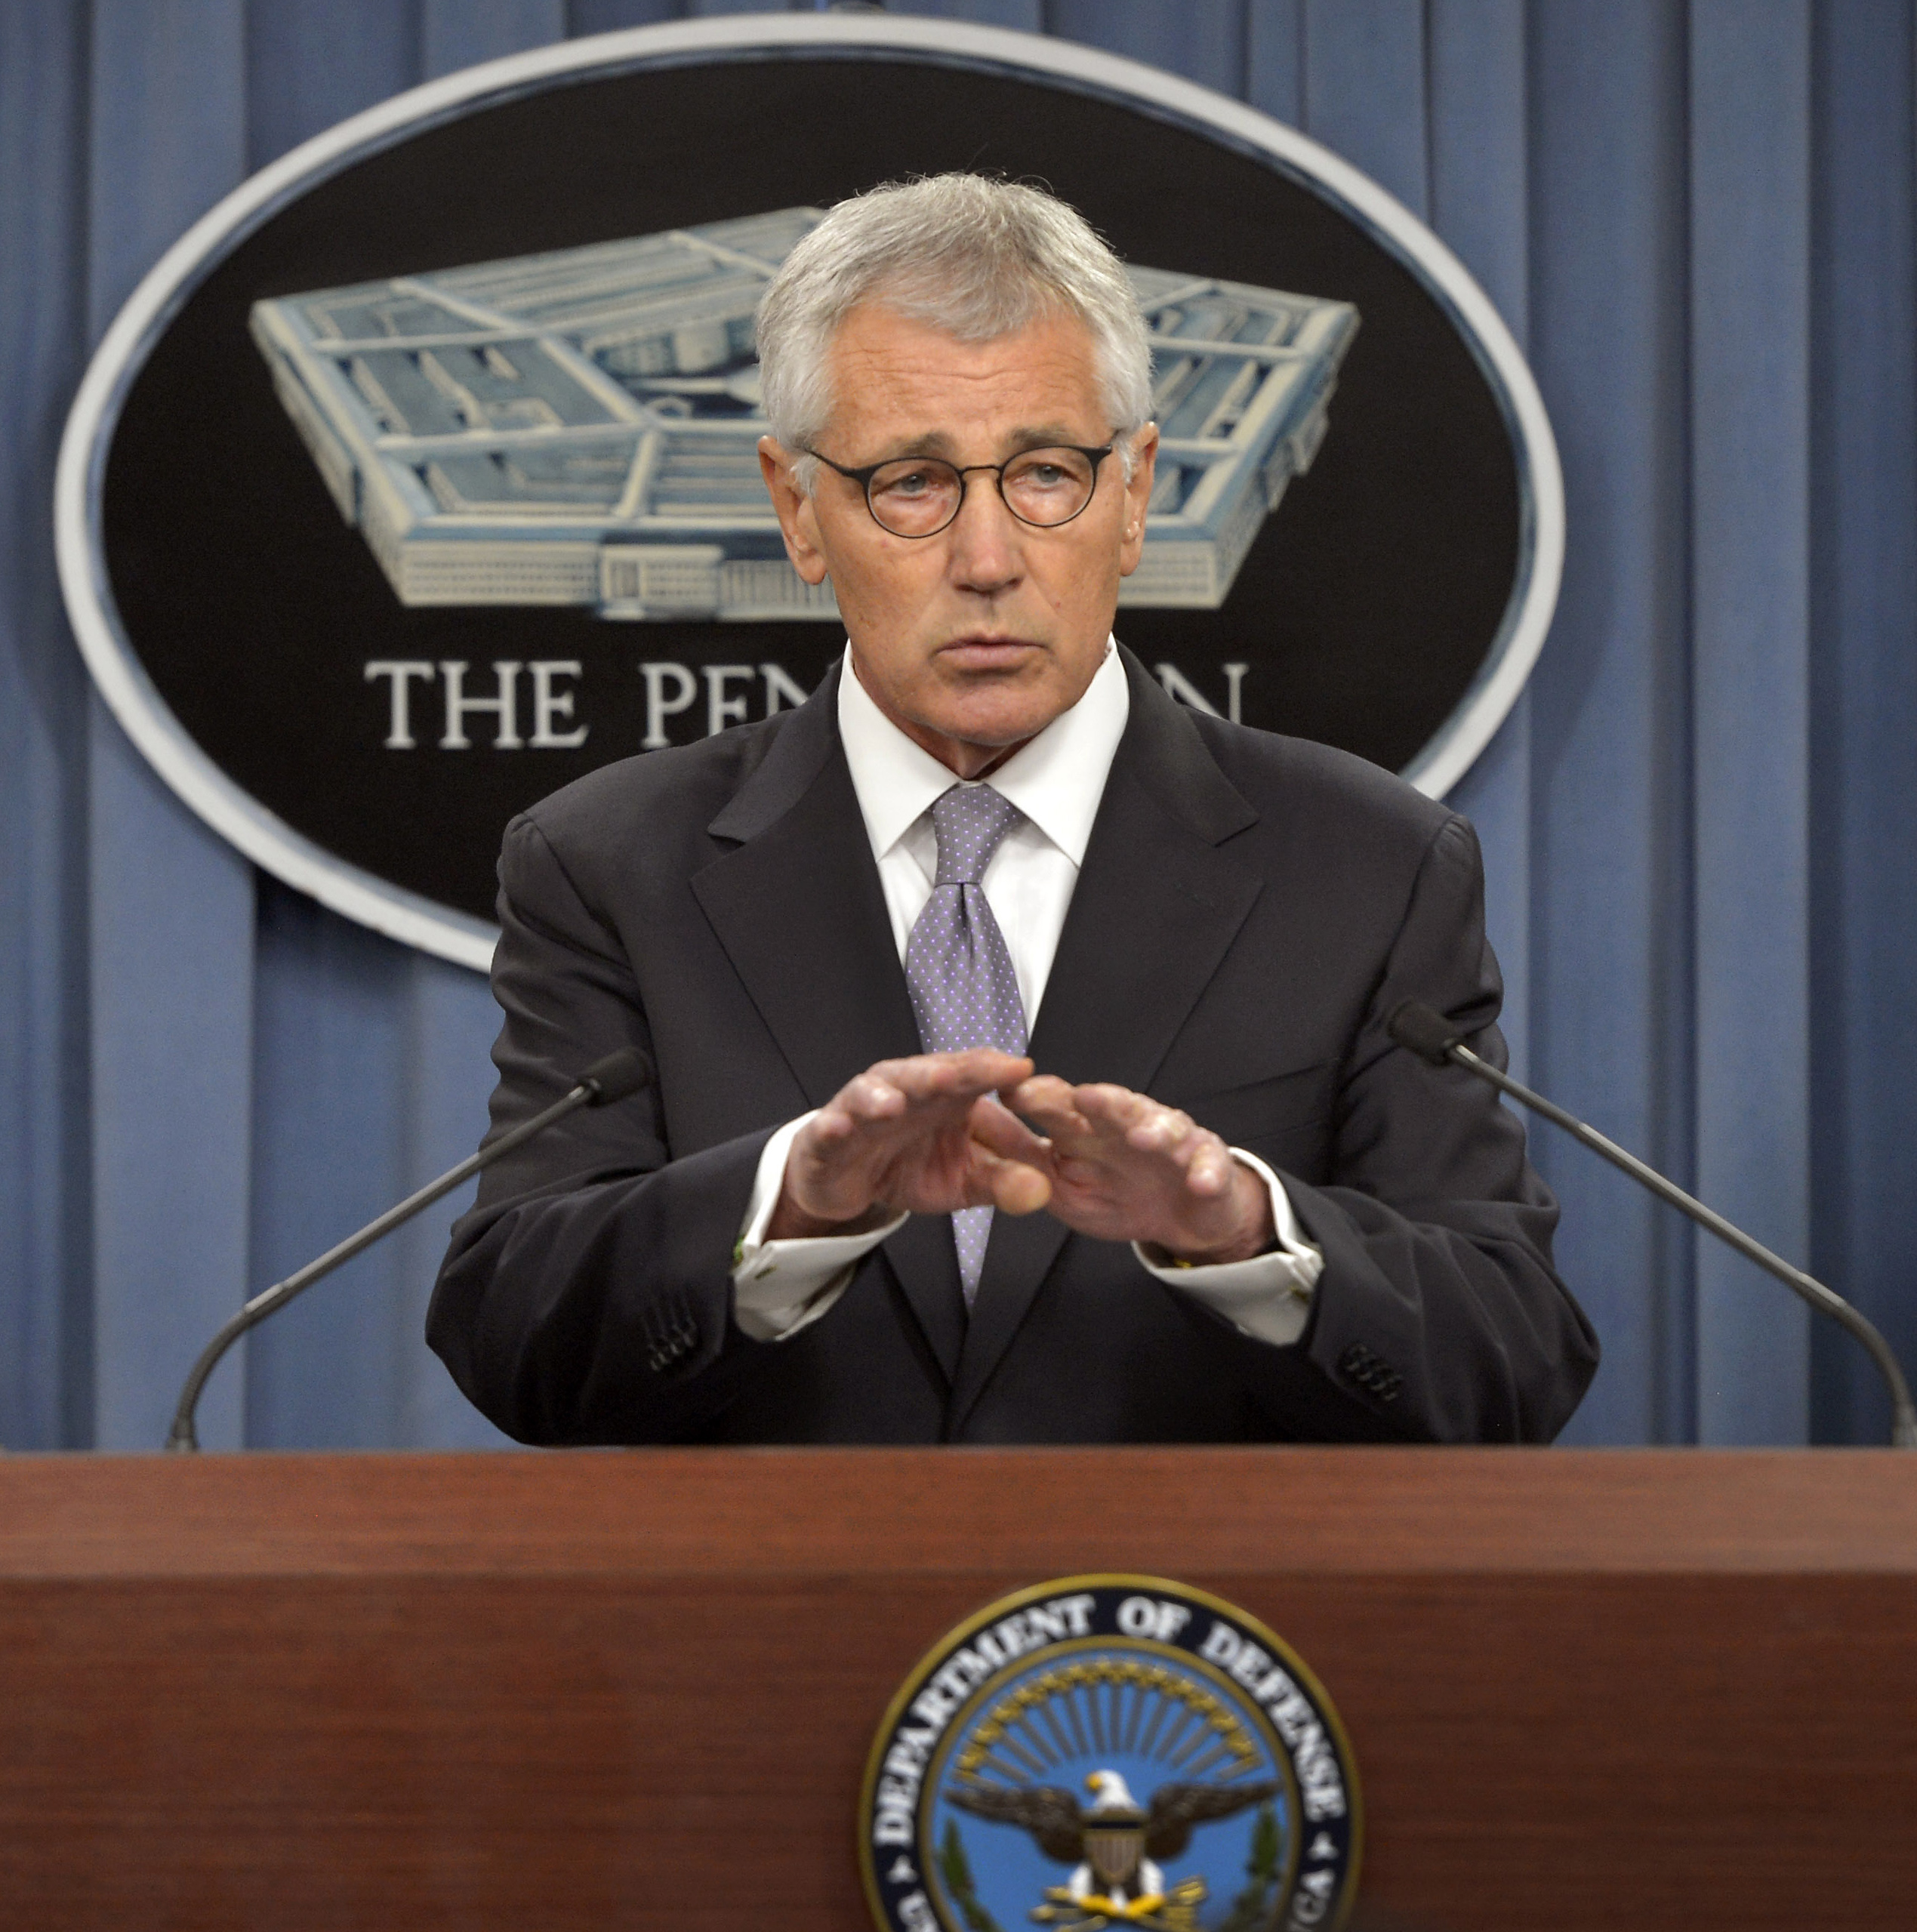 Secretary of Defense Chuck Hagel on Oct. 1, 2014. DoD Photo